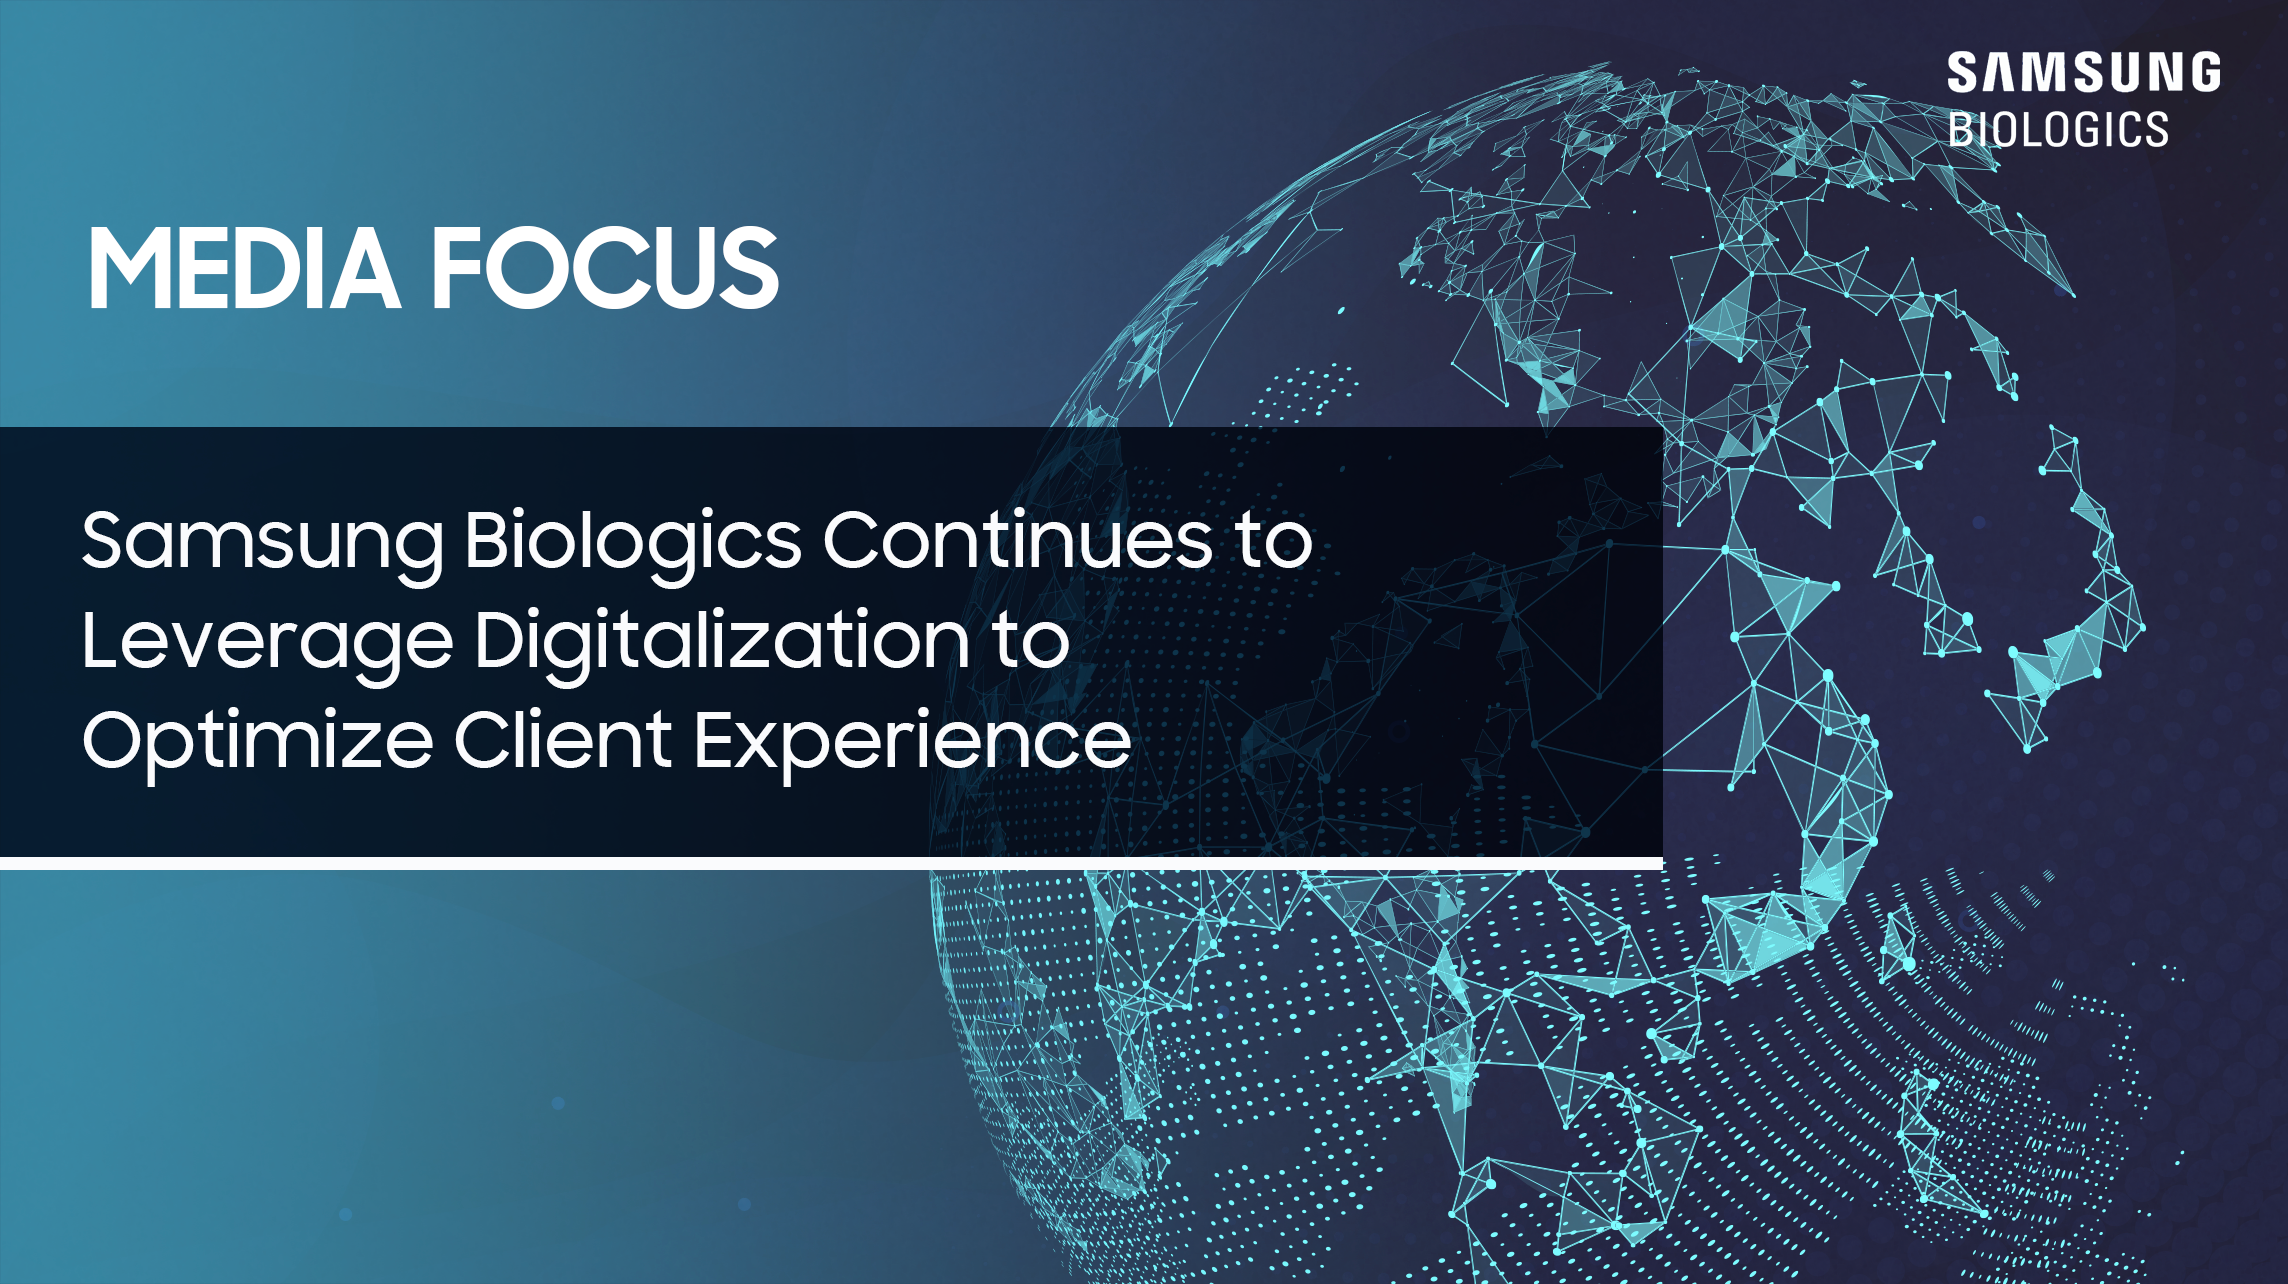 Samsung Biologics Continues to Leverage Digitalization to Optimize Client Experience